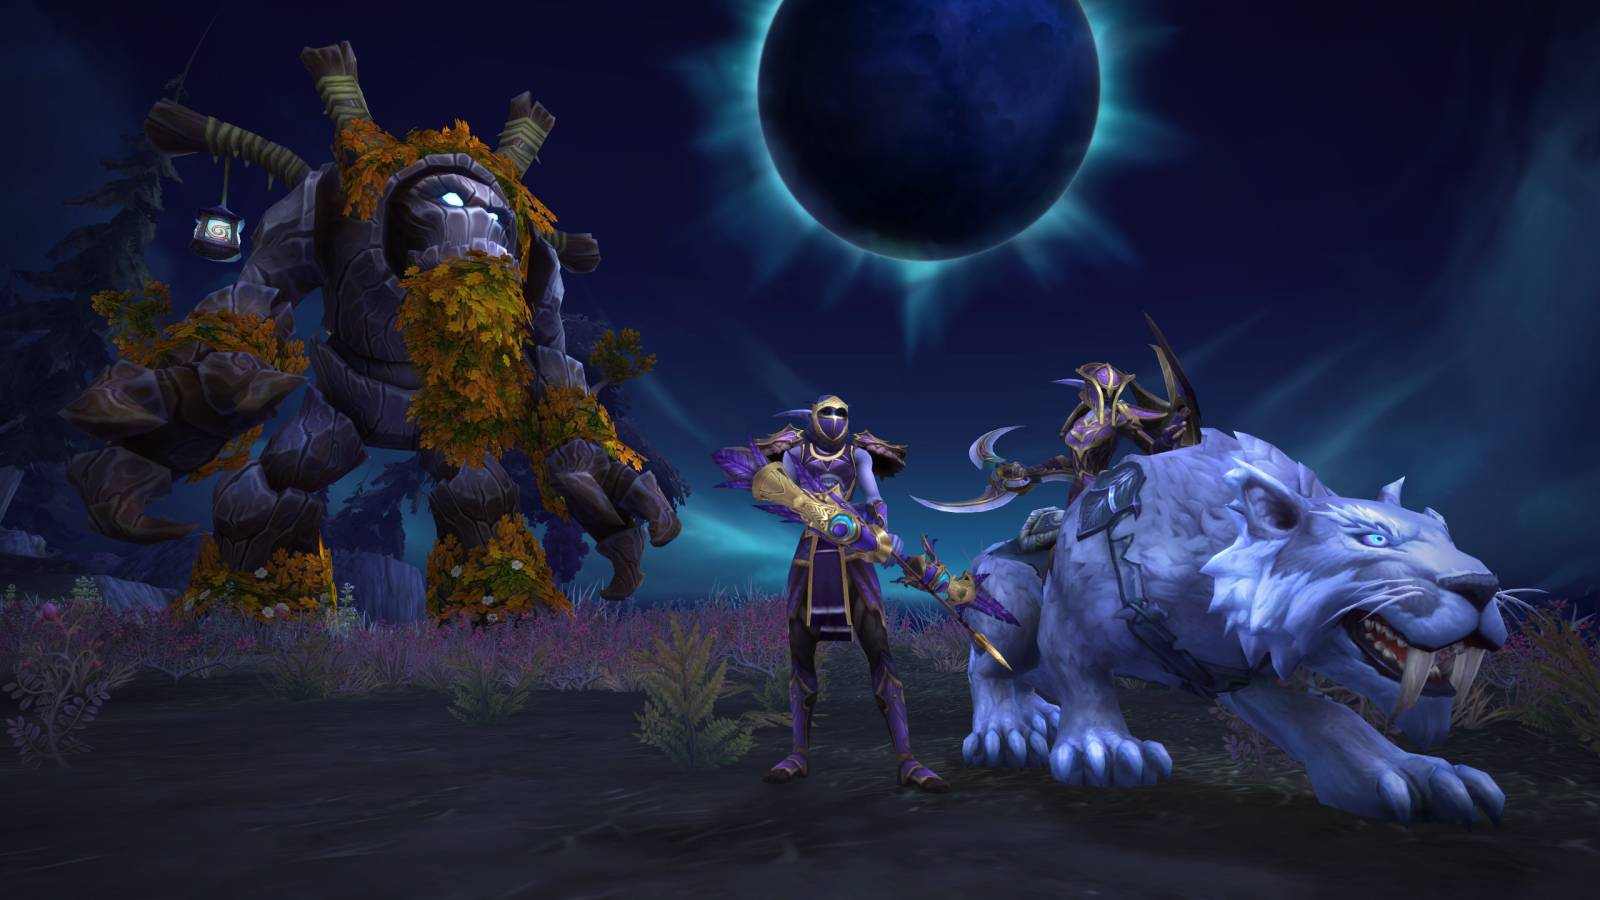 Screenshot from Darkshore Warfront in World of Warcraft